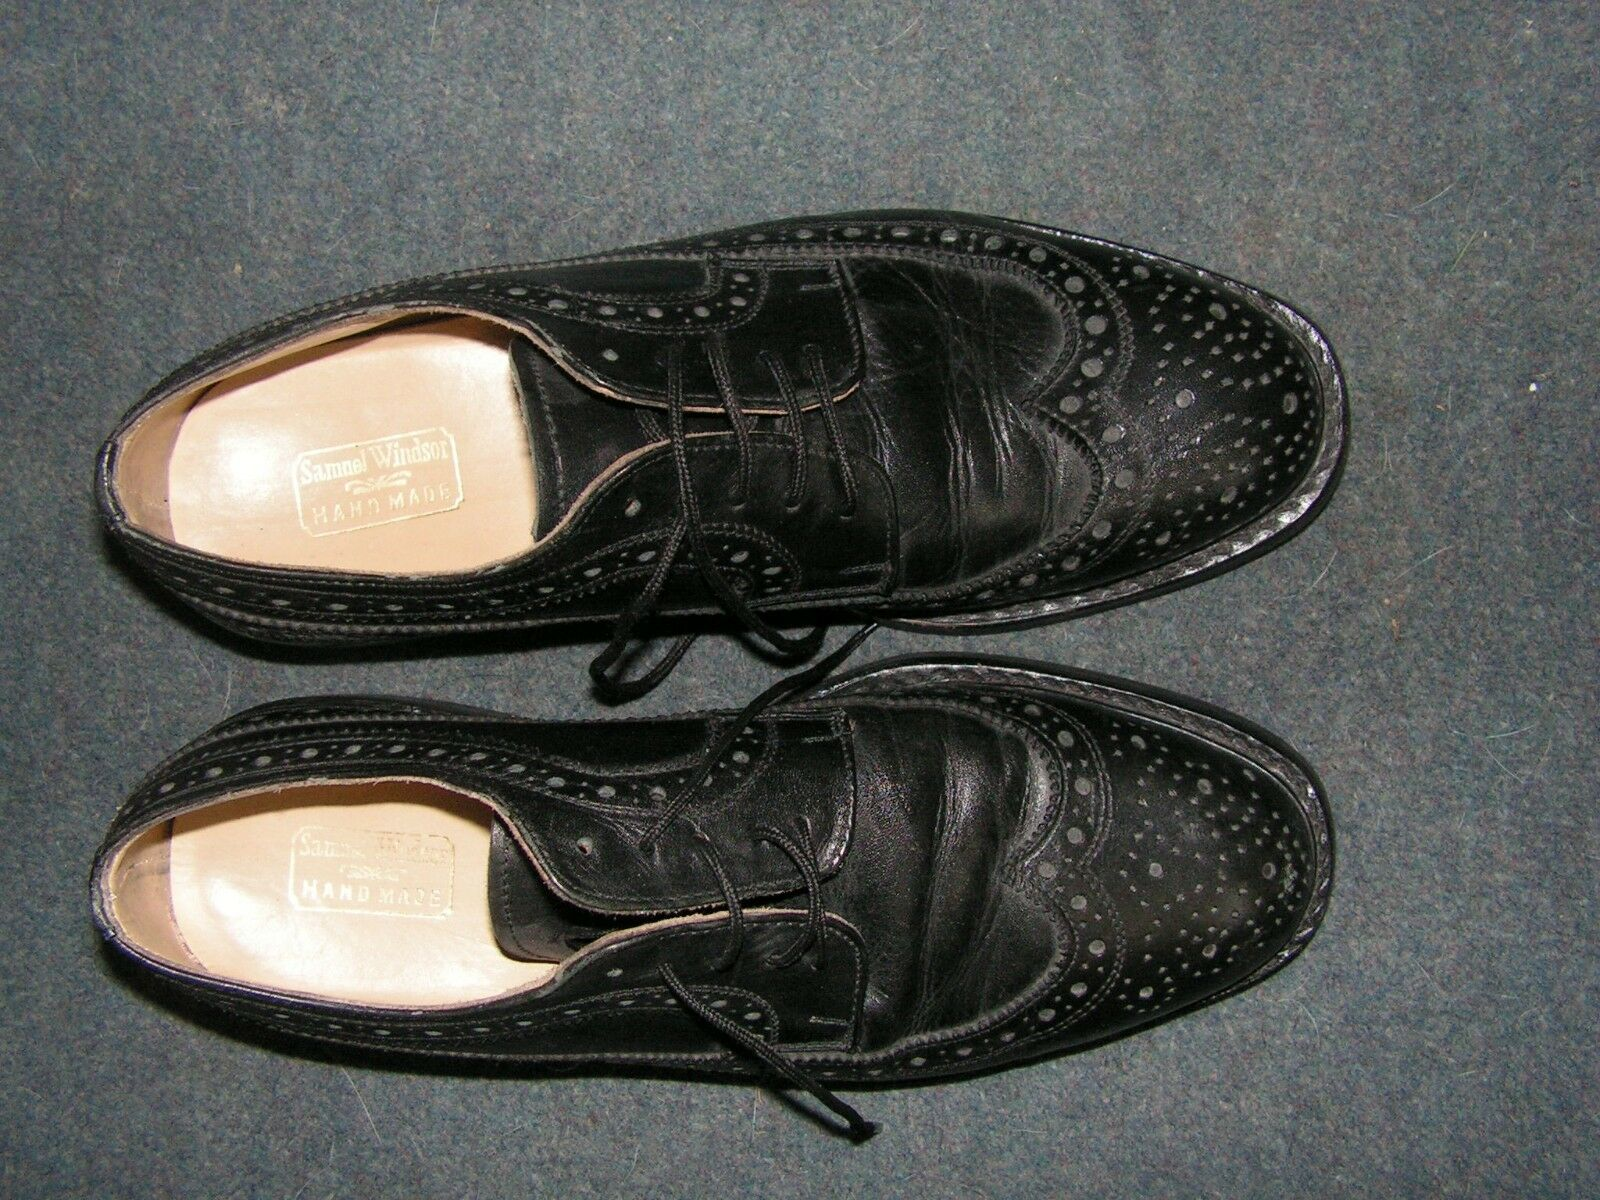 SAMUEL WINDSOR MENS CLASSIC BROGUE SHOES HAND MADE BLACK LEATHER SIZE 7